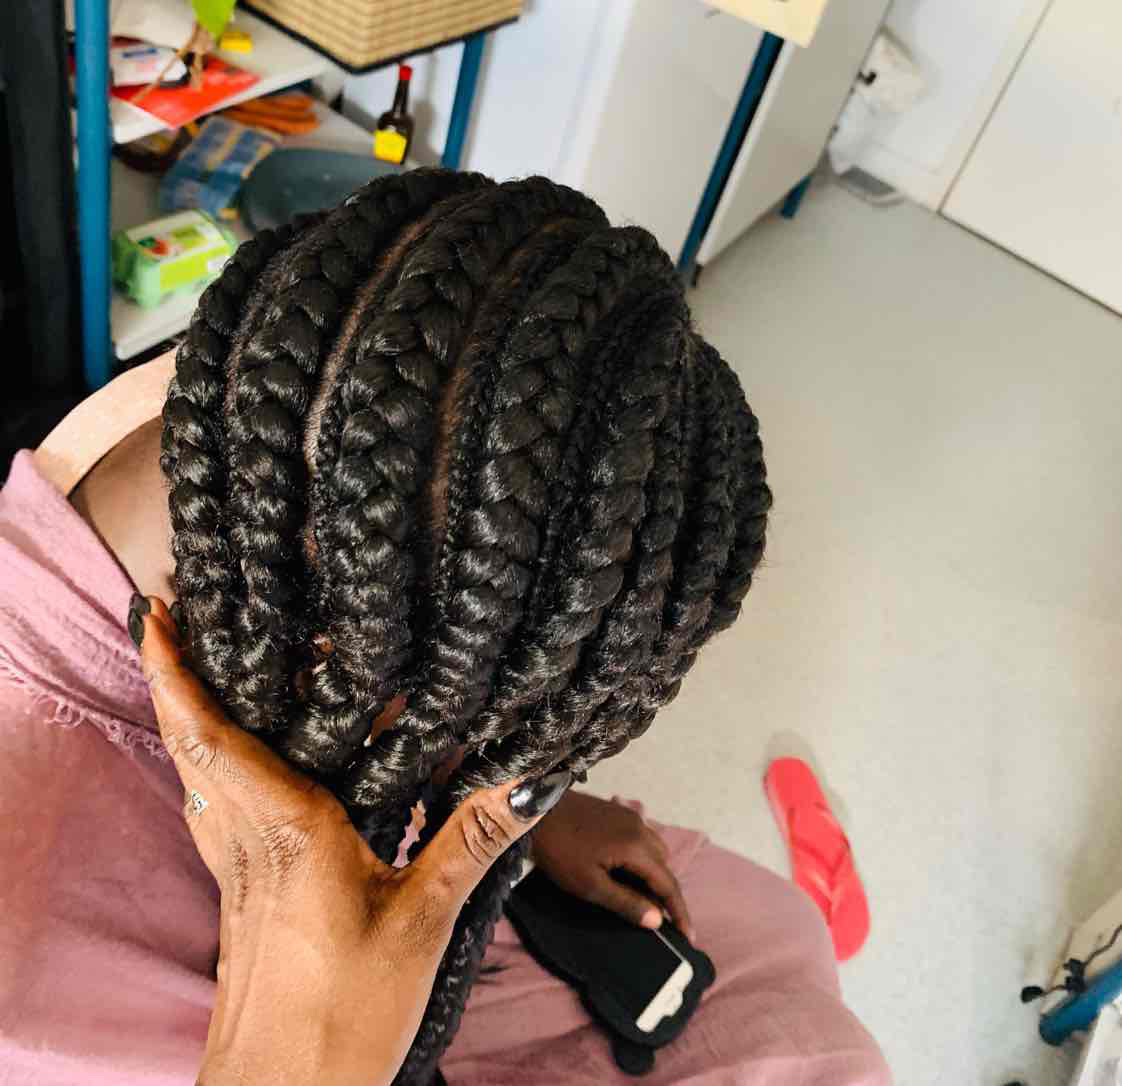 salon de coiffure afro tresse tresses box braids crochet braids vanilles tissages paris 75 77 78 91 92 93 94 95 BHOLRGRD